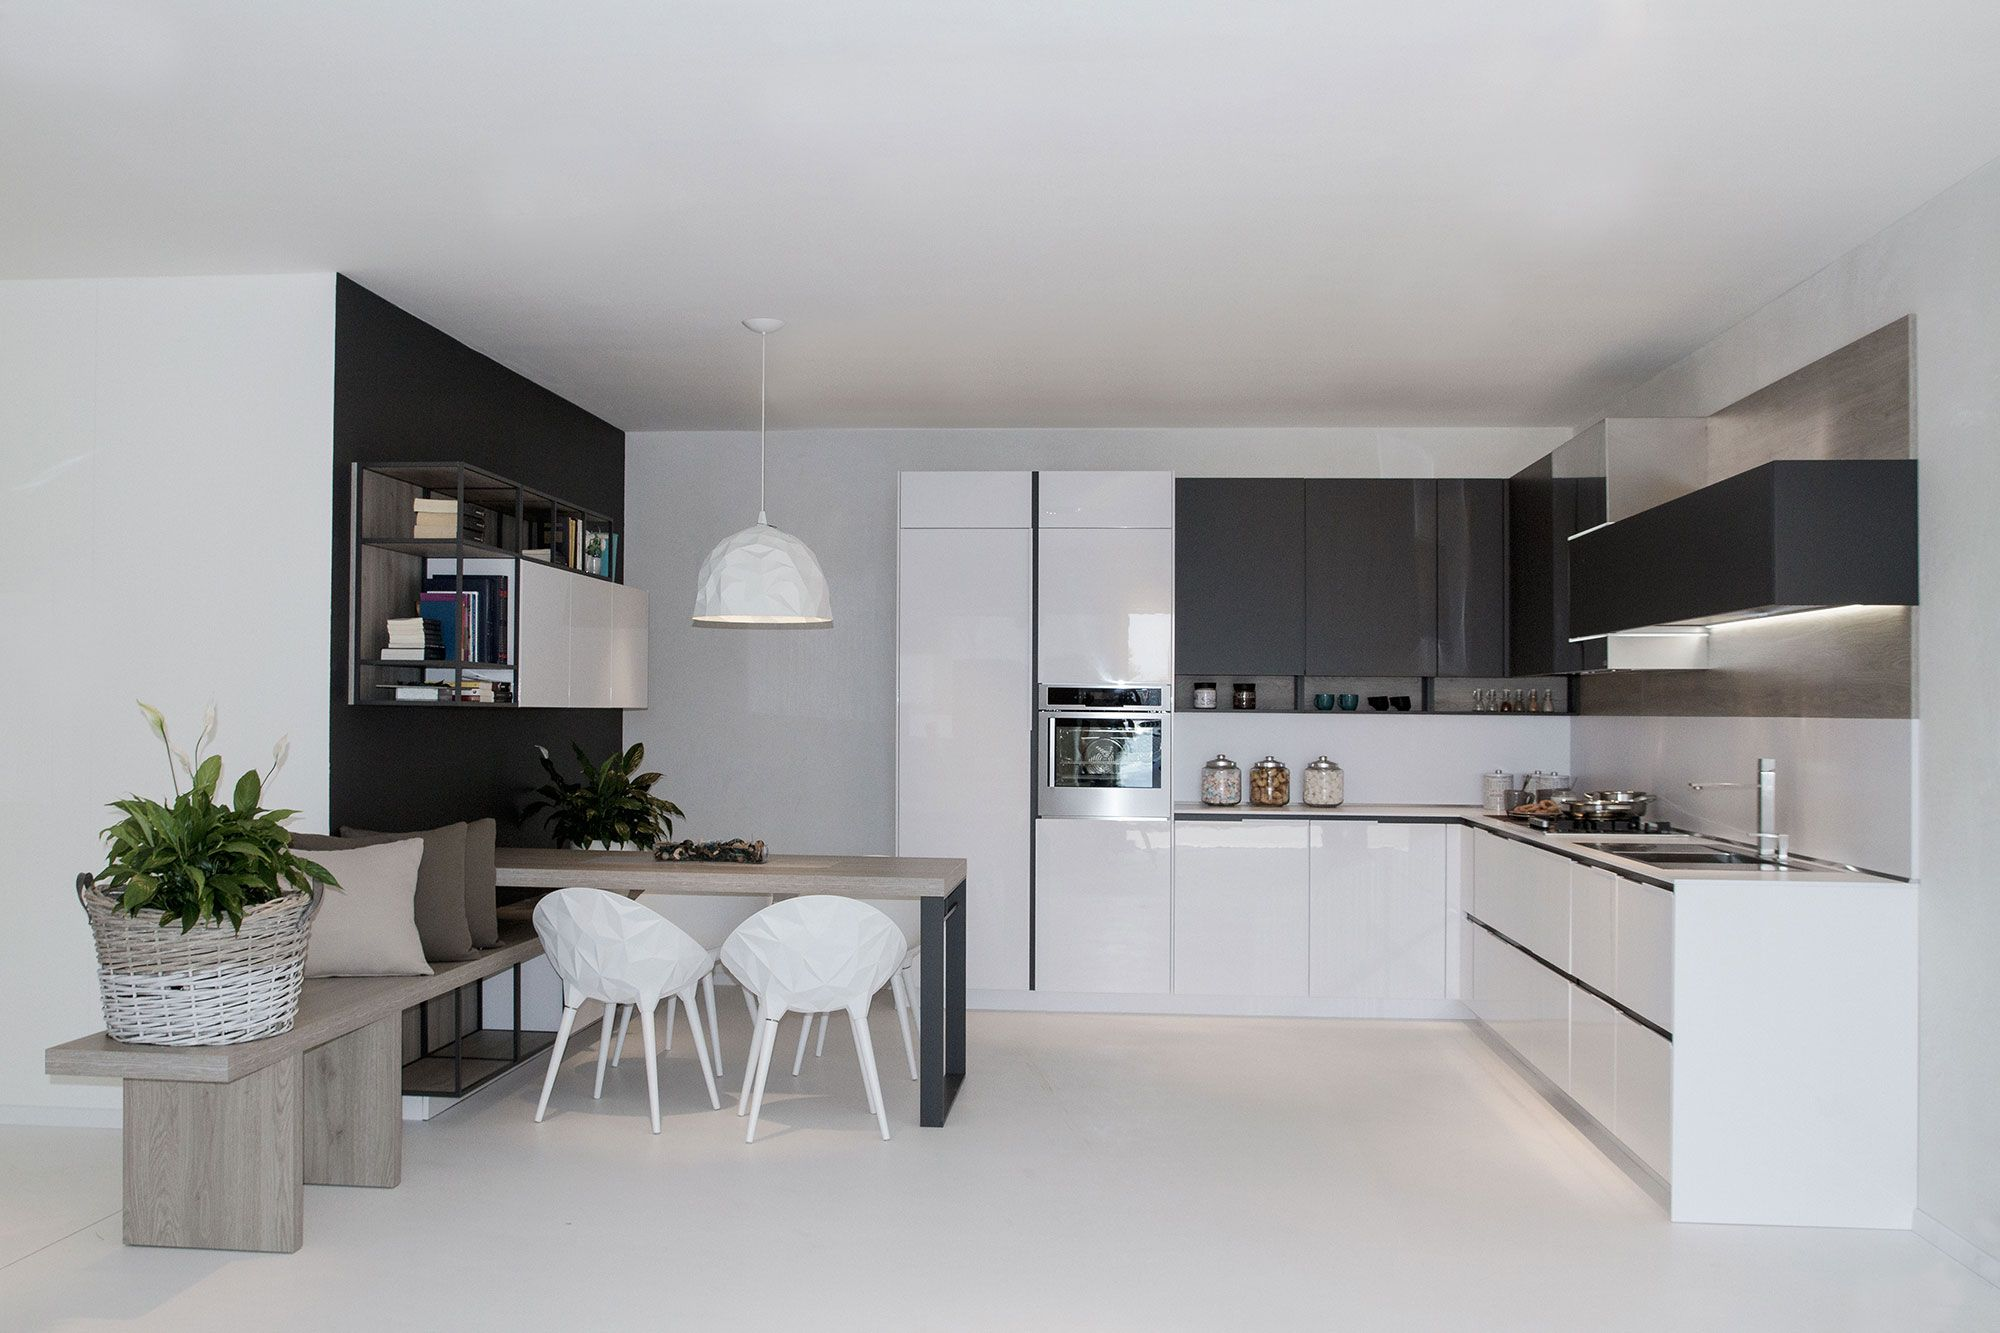 Cucine Moderne Piccole Ad Angolo.Orange Evolution Collection System Elegant Kitchens From